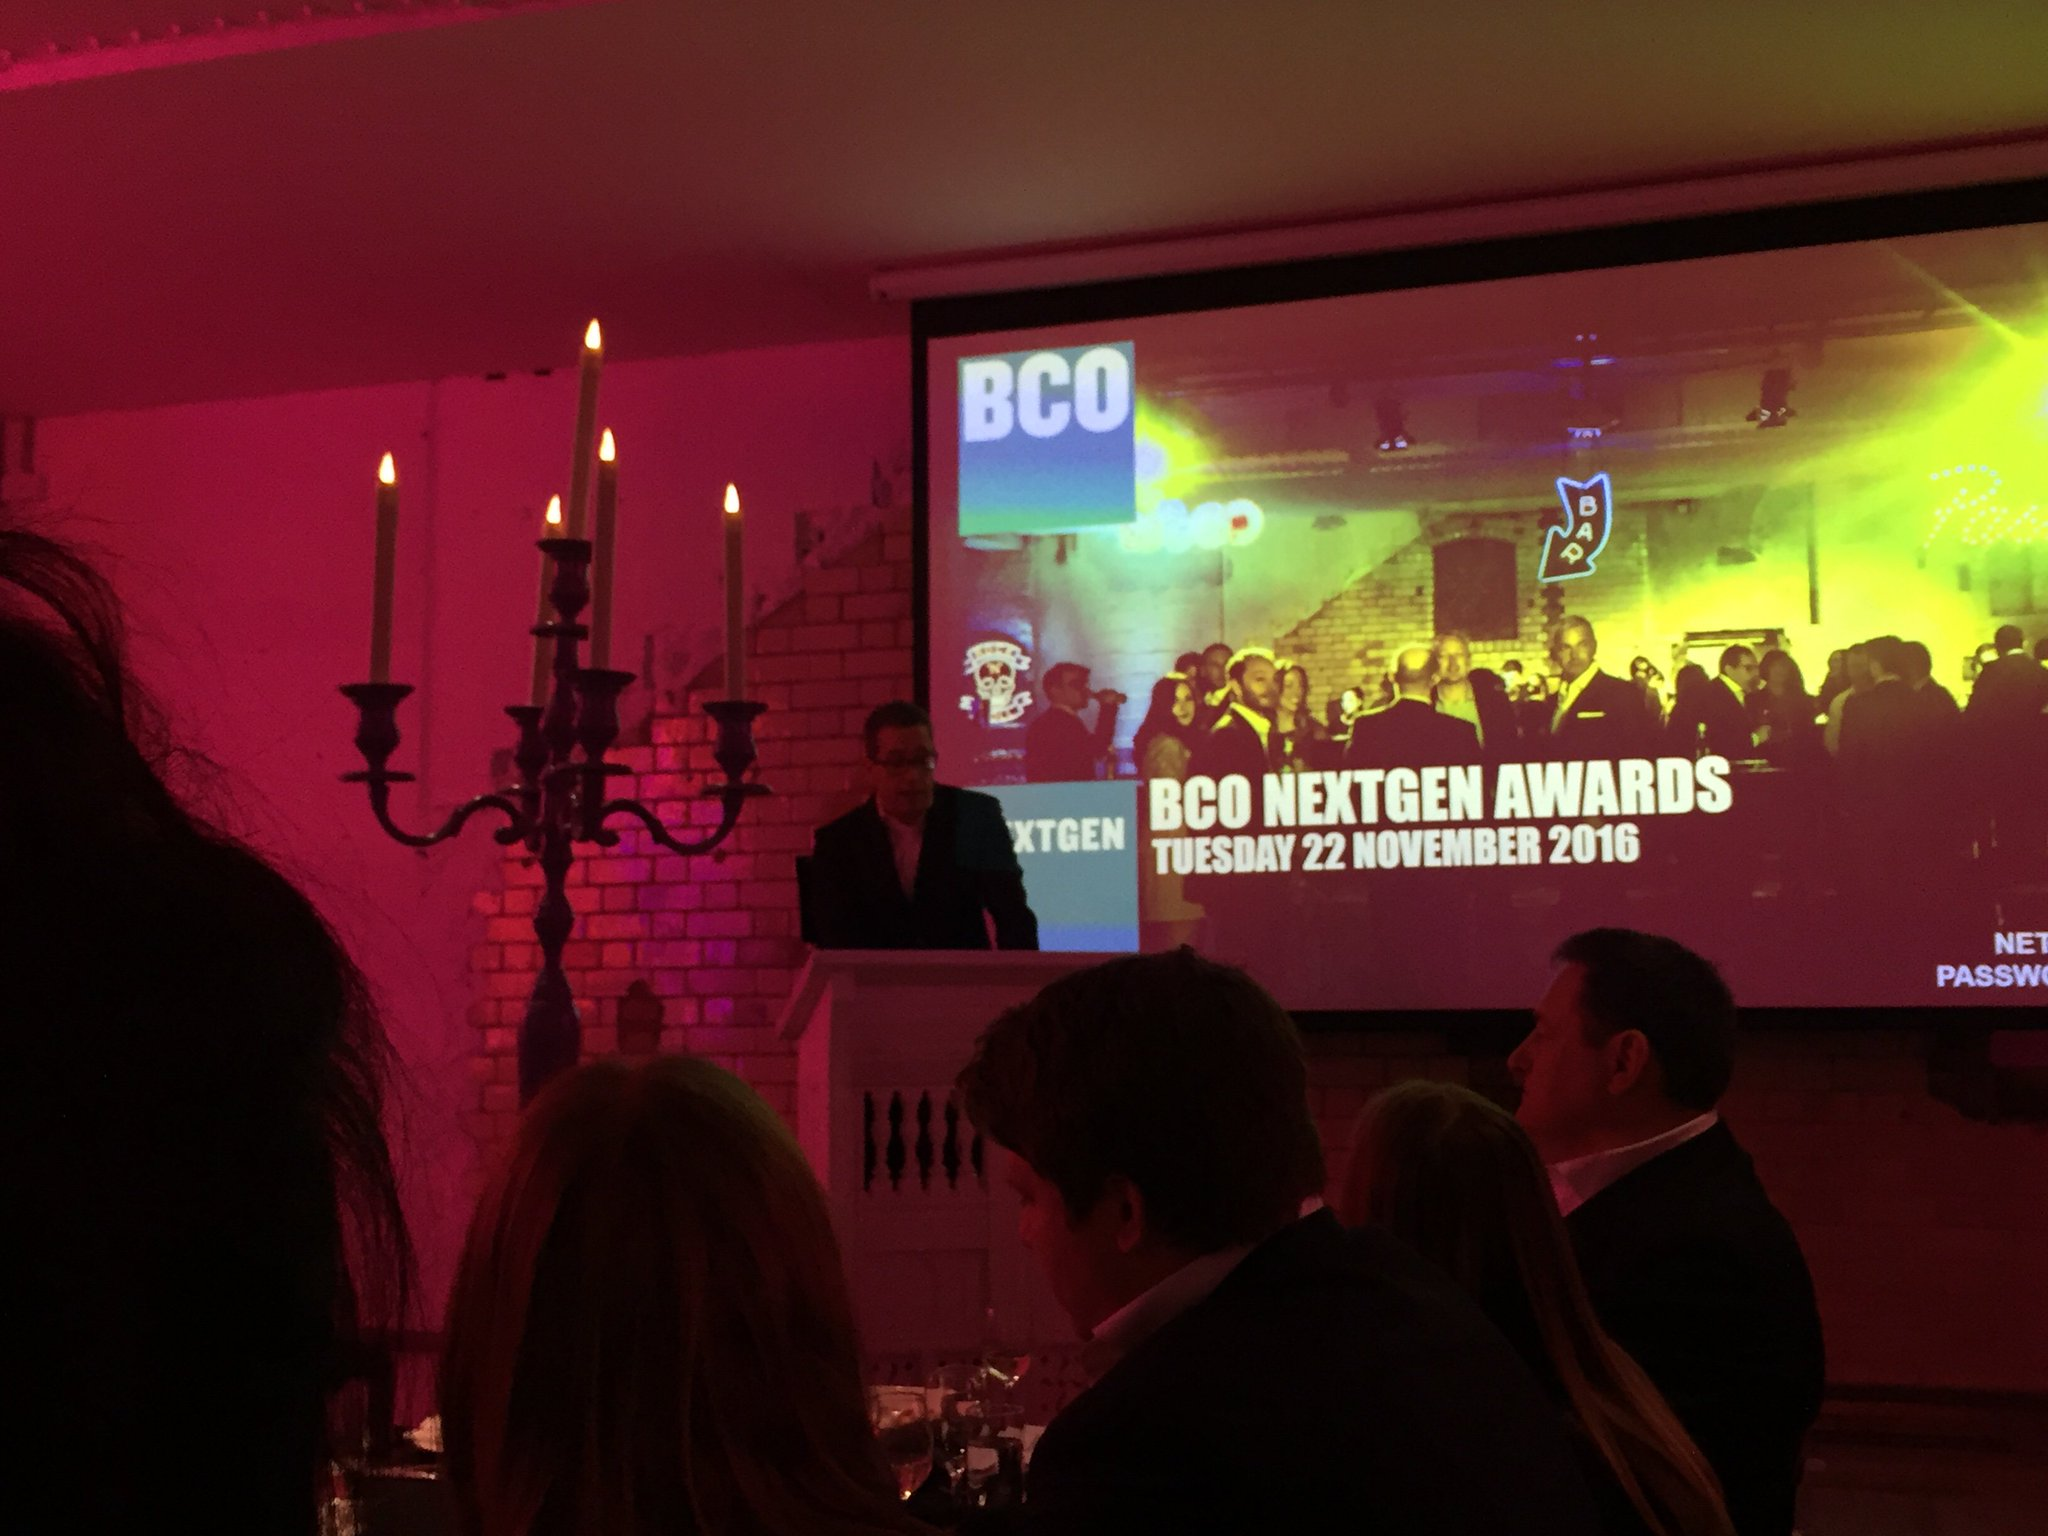 """""""Our involvement [with @BCO_UK] has had a tangible impact on the quality of our office developments"""" M Weiner @UandIplc #BCONextGenAwards https://t.co/pgvWNcw87E"""